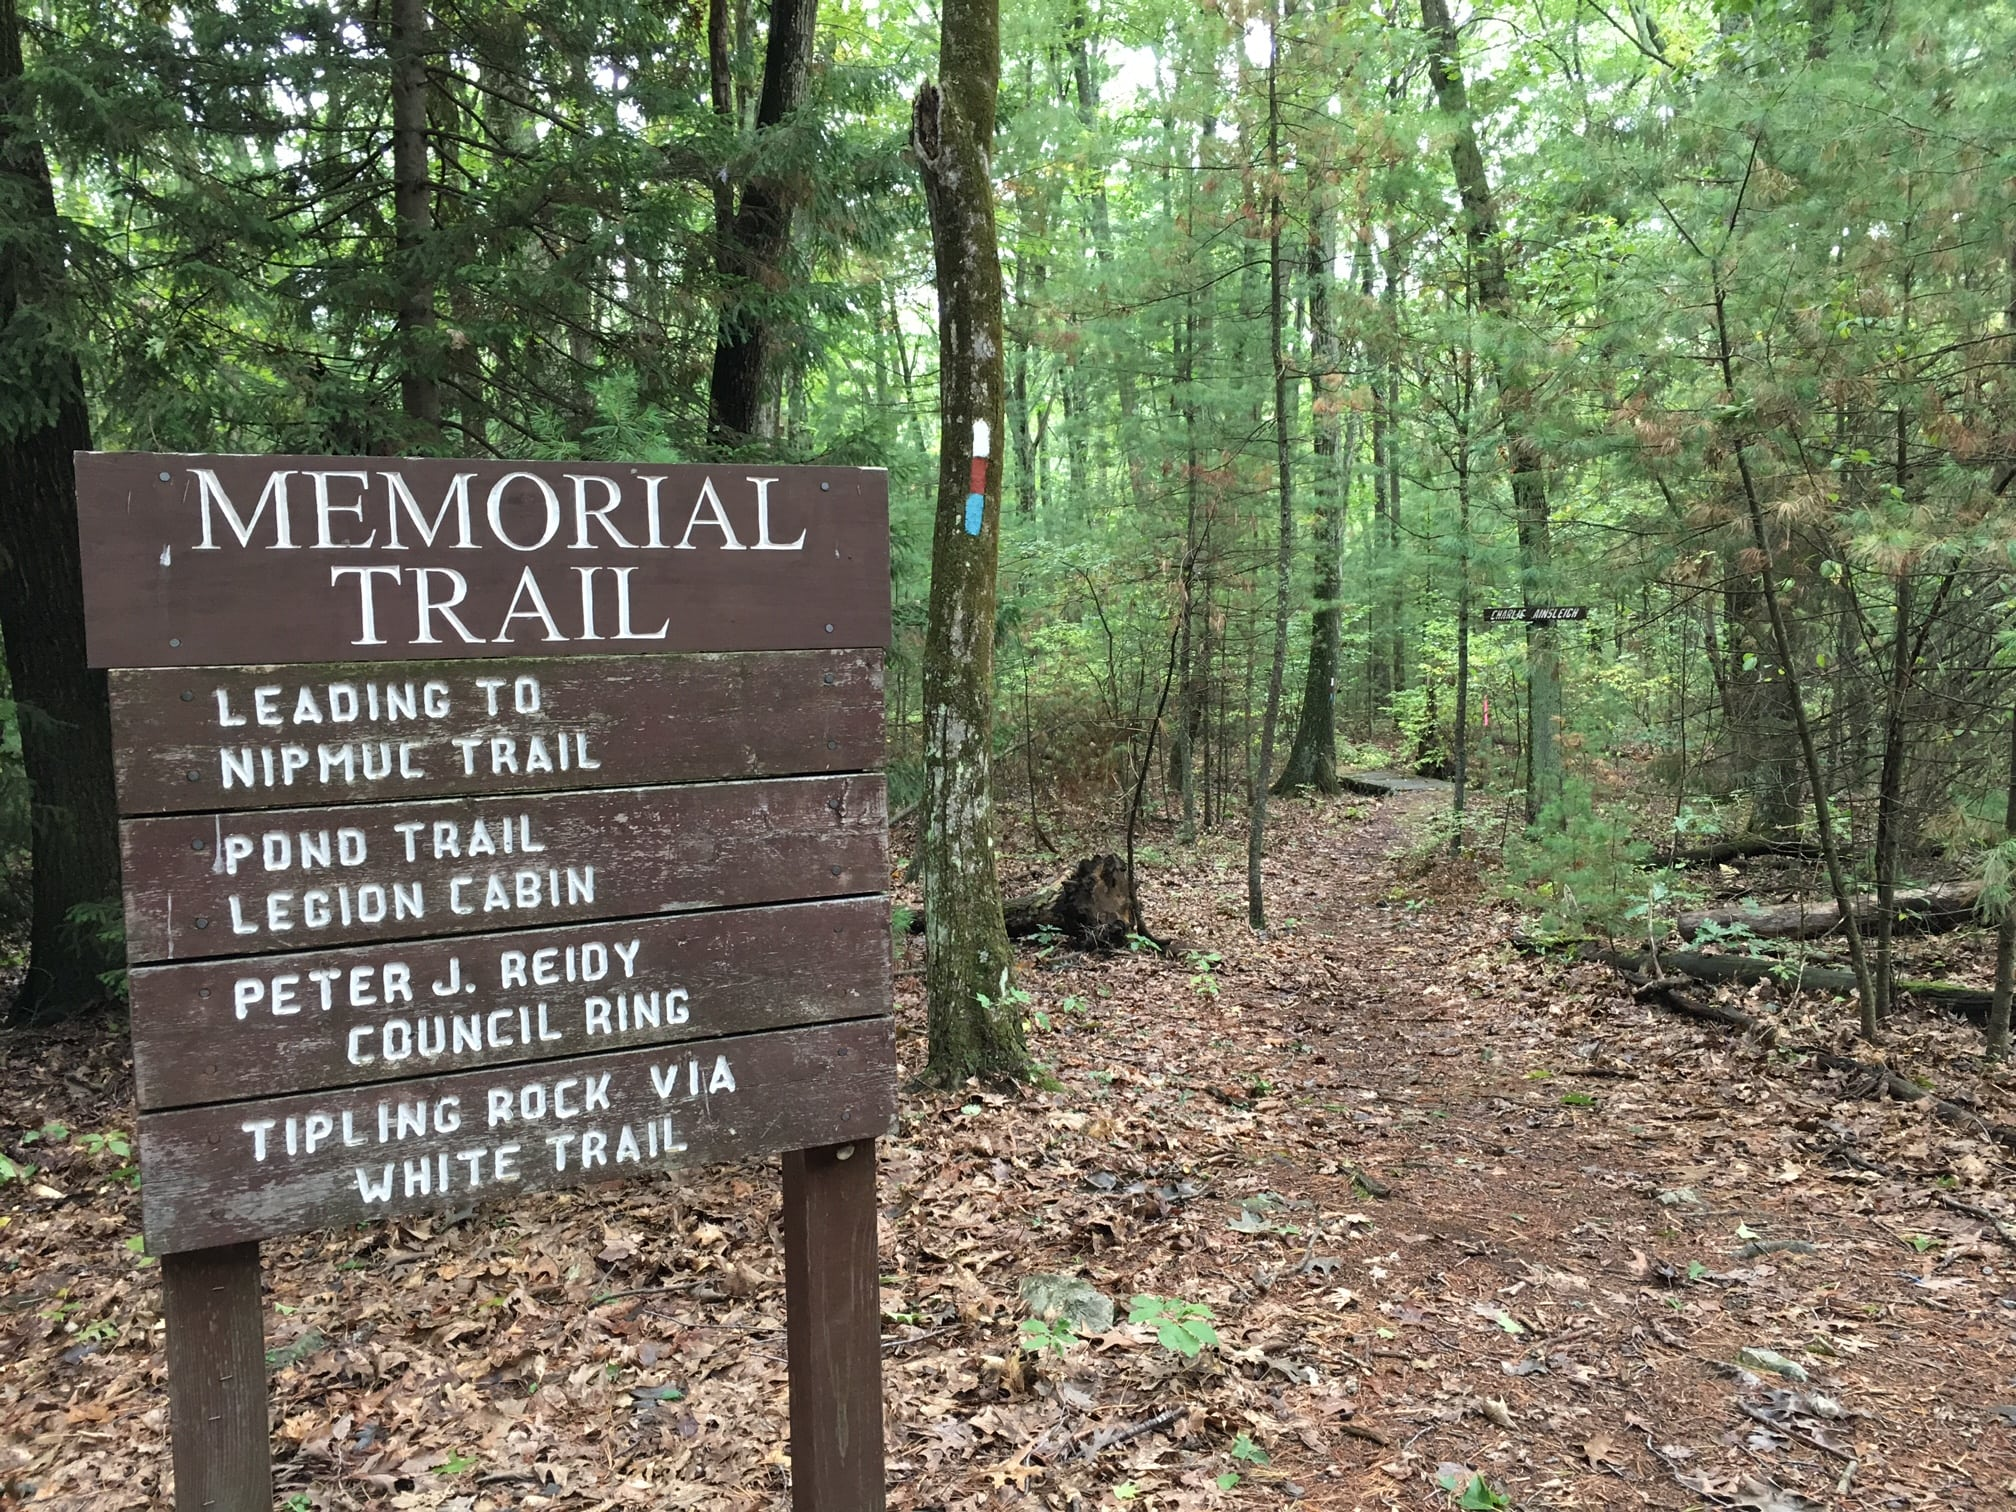 Take the Memorial Trail up to Tipling Rock. Follow the white blazes.